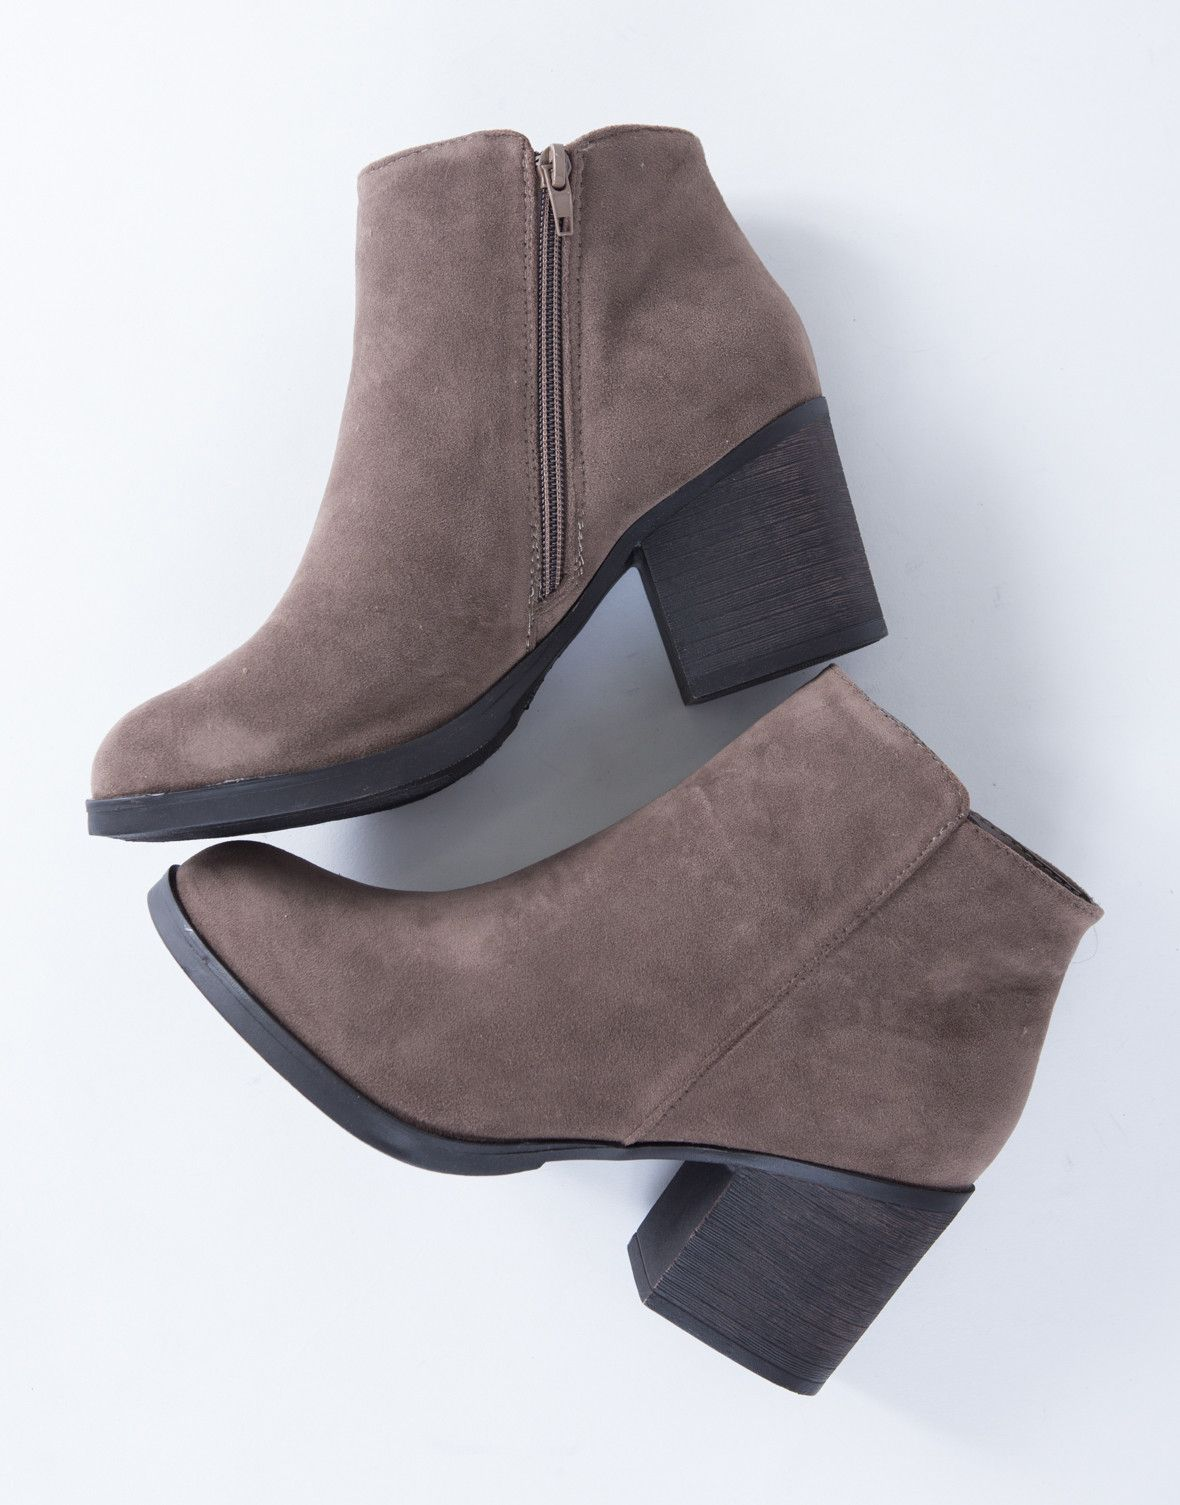 ddbf9e76fc7 The Casual Suede Heel Booties are the type of boots you can wear on a daily  basis. You will love the simple